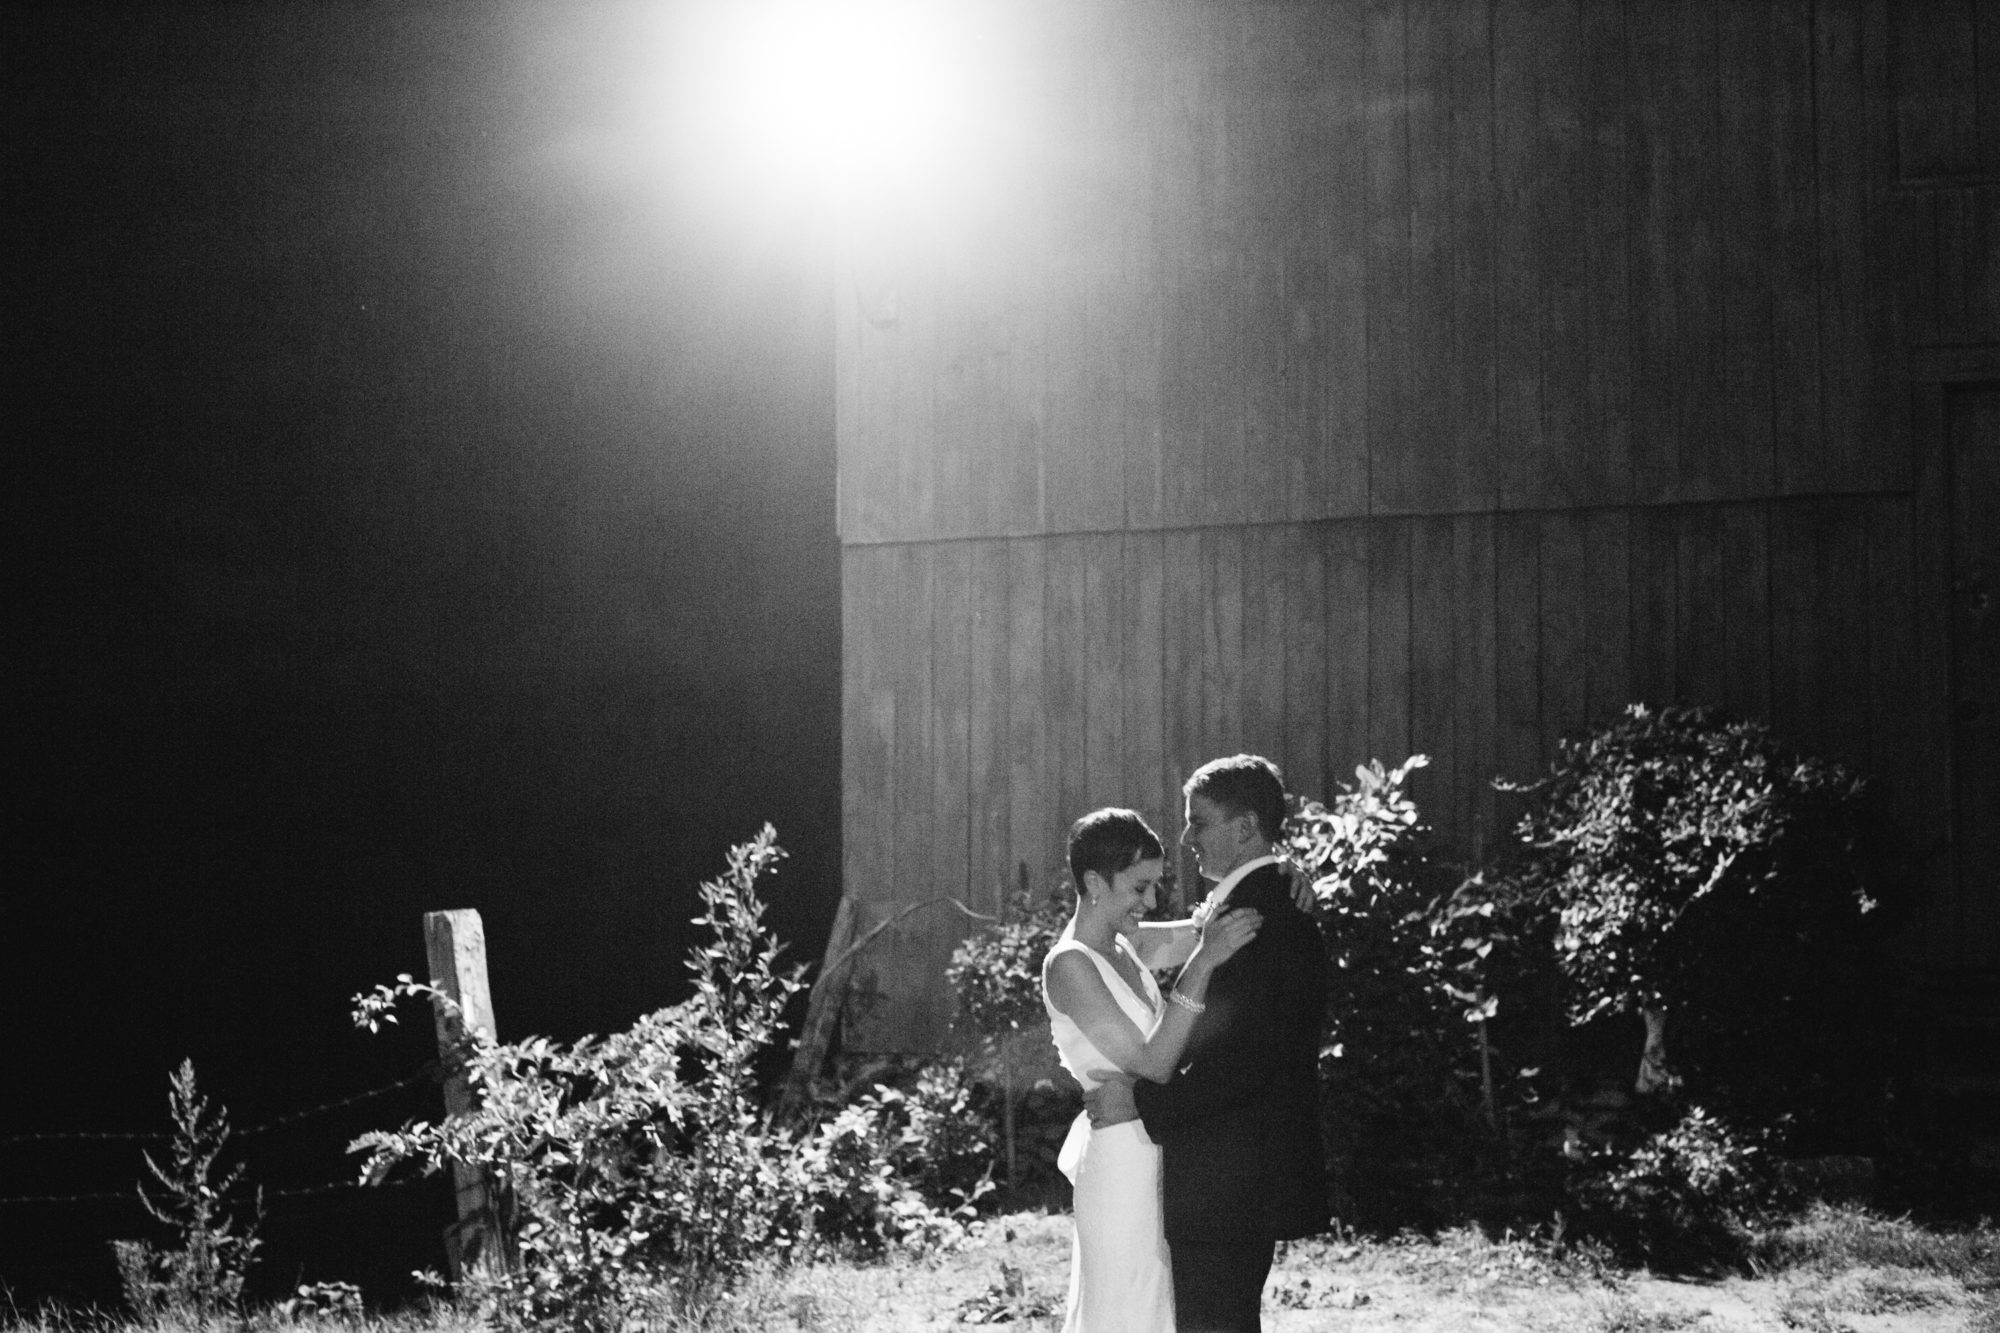 Night Shot Barn Bride Groom Black and White Wedding Massachusetts Zsuzsi Pal Photography Destination